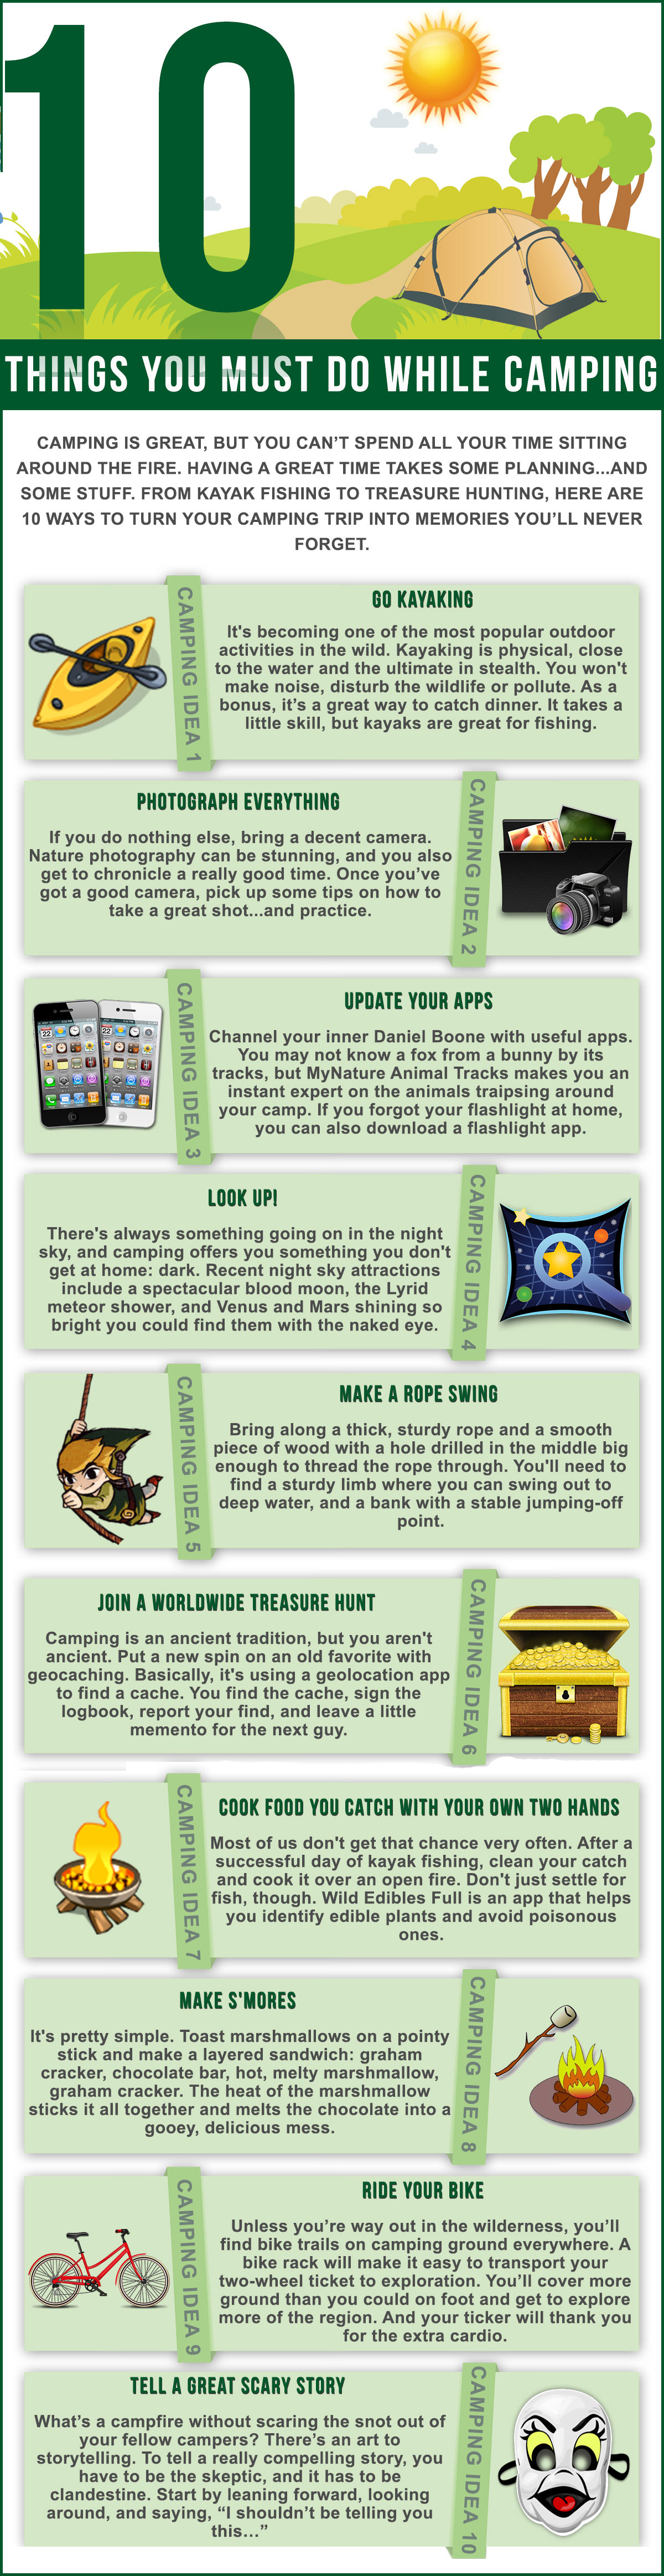 10 Things You Must Do While Camping